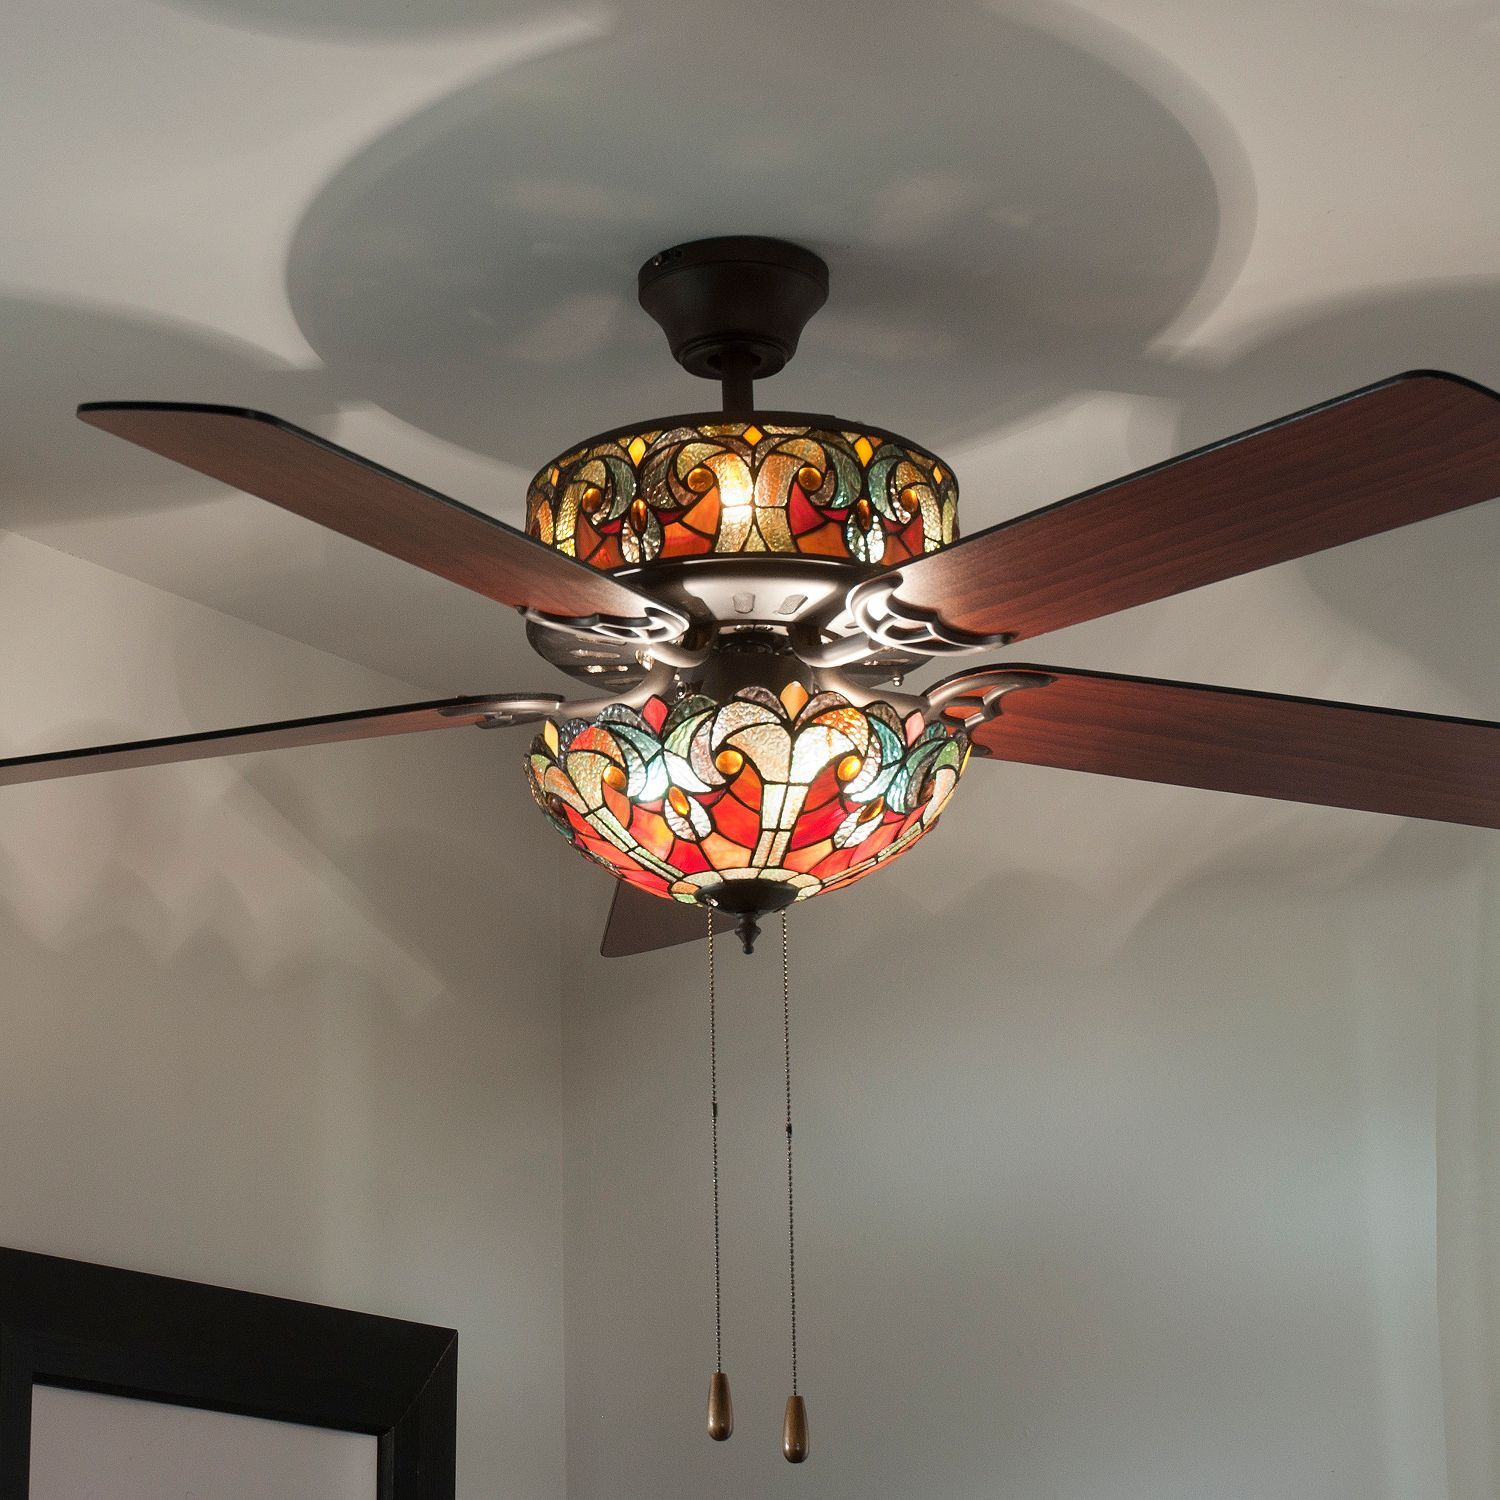 withan indoor with chandelier kit fan warehouse inspirations light size fans style in picture tiffany ceiling exciting kits full faux attached charla bronze of bedroom